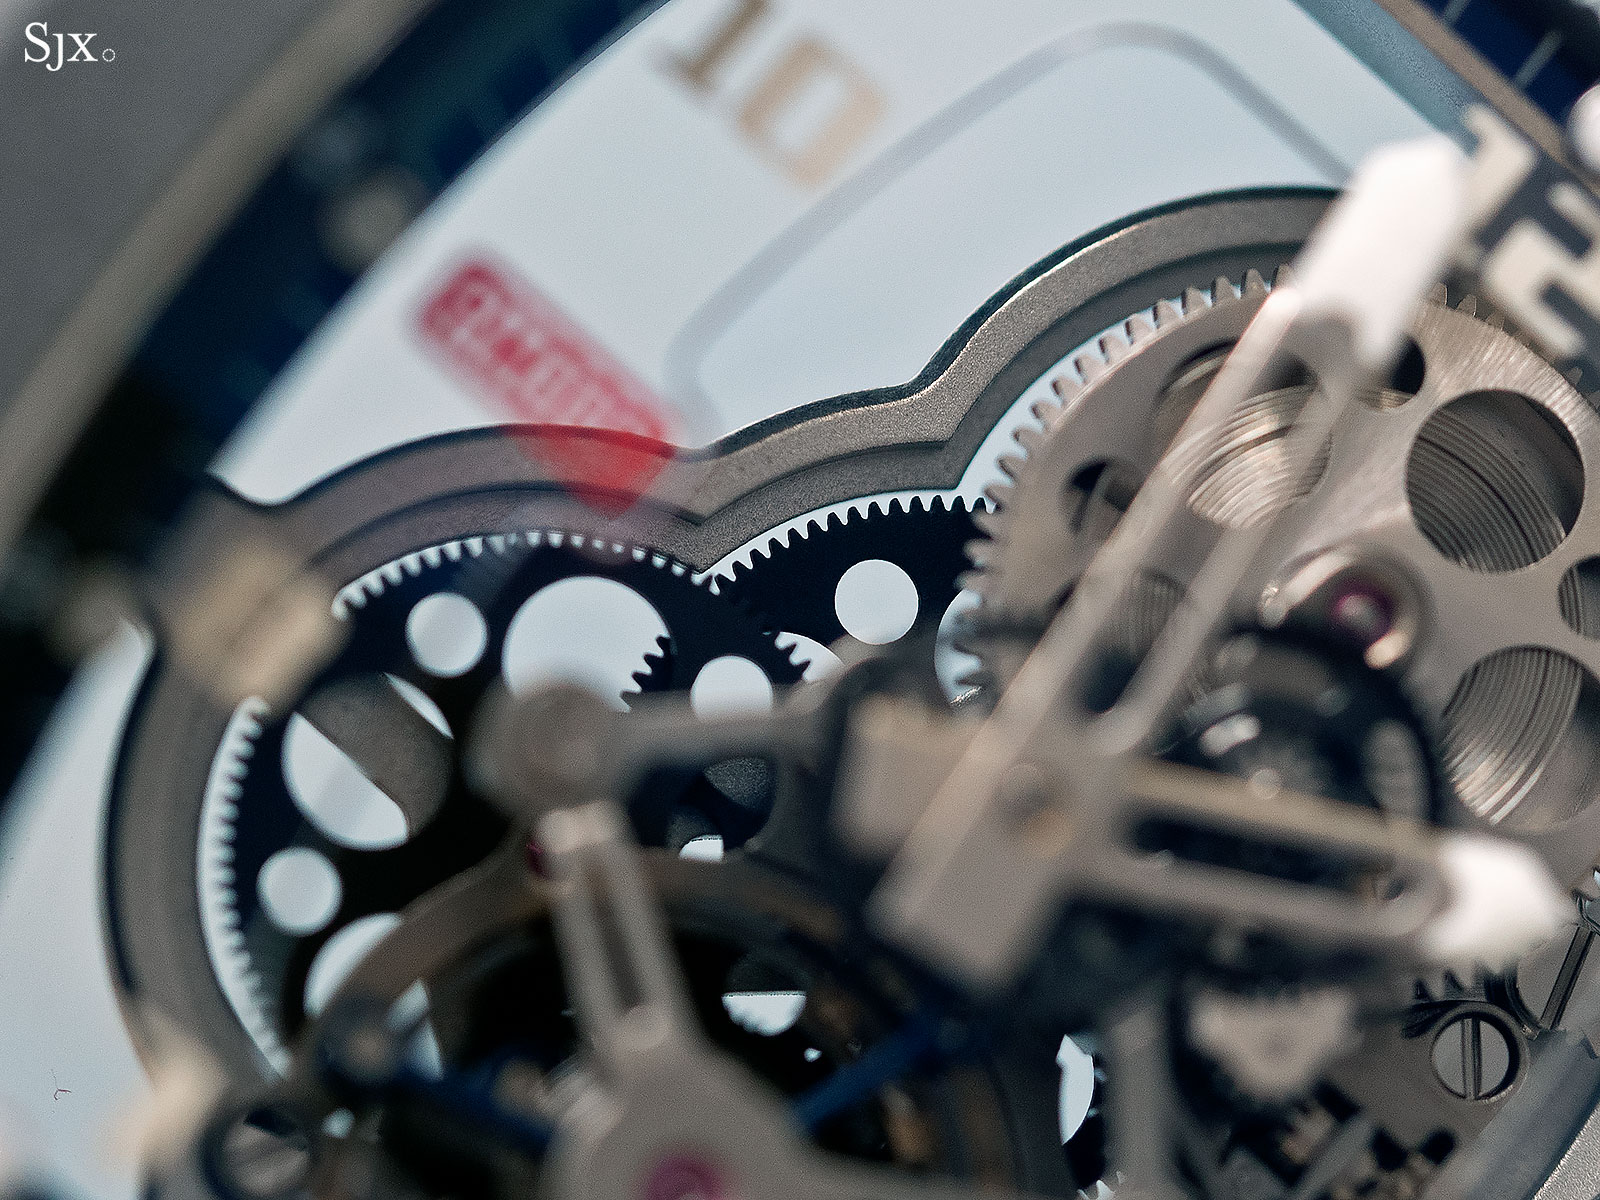 Richard Mille RM009 Alusic tourbillon 16